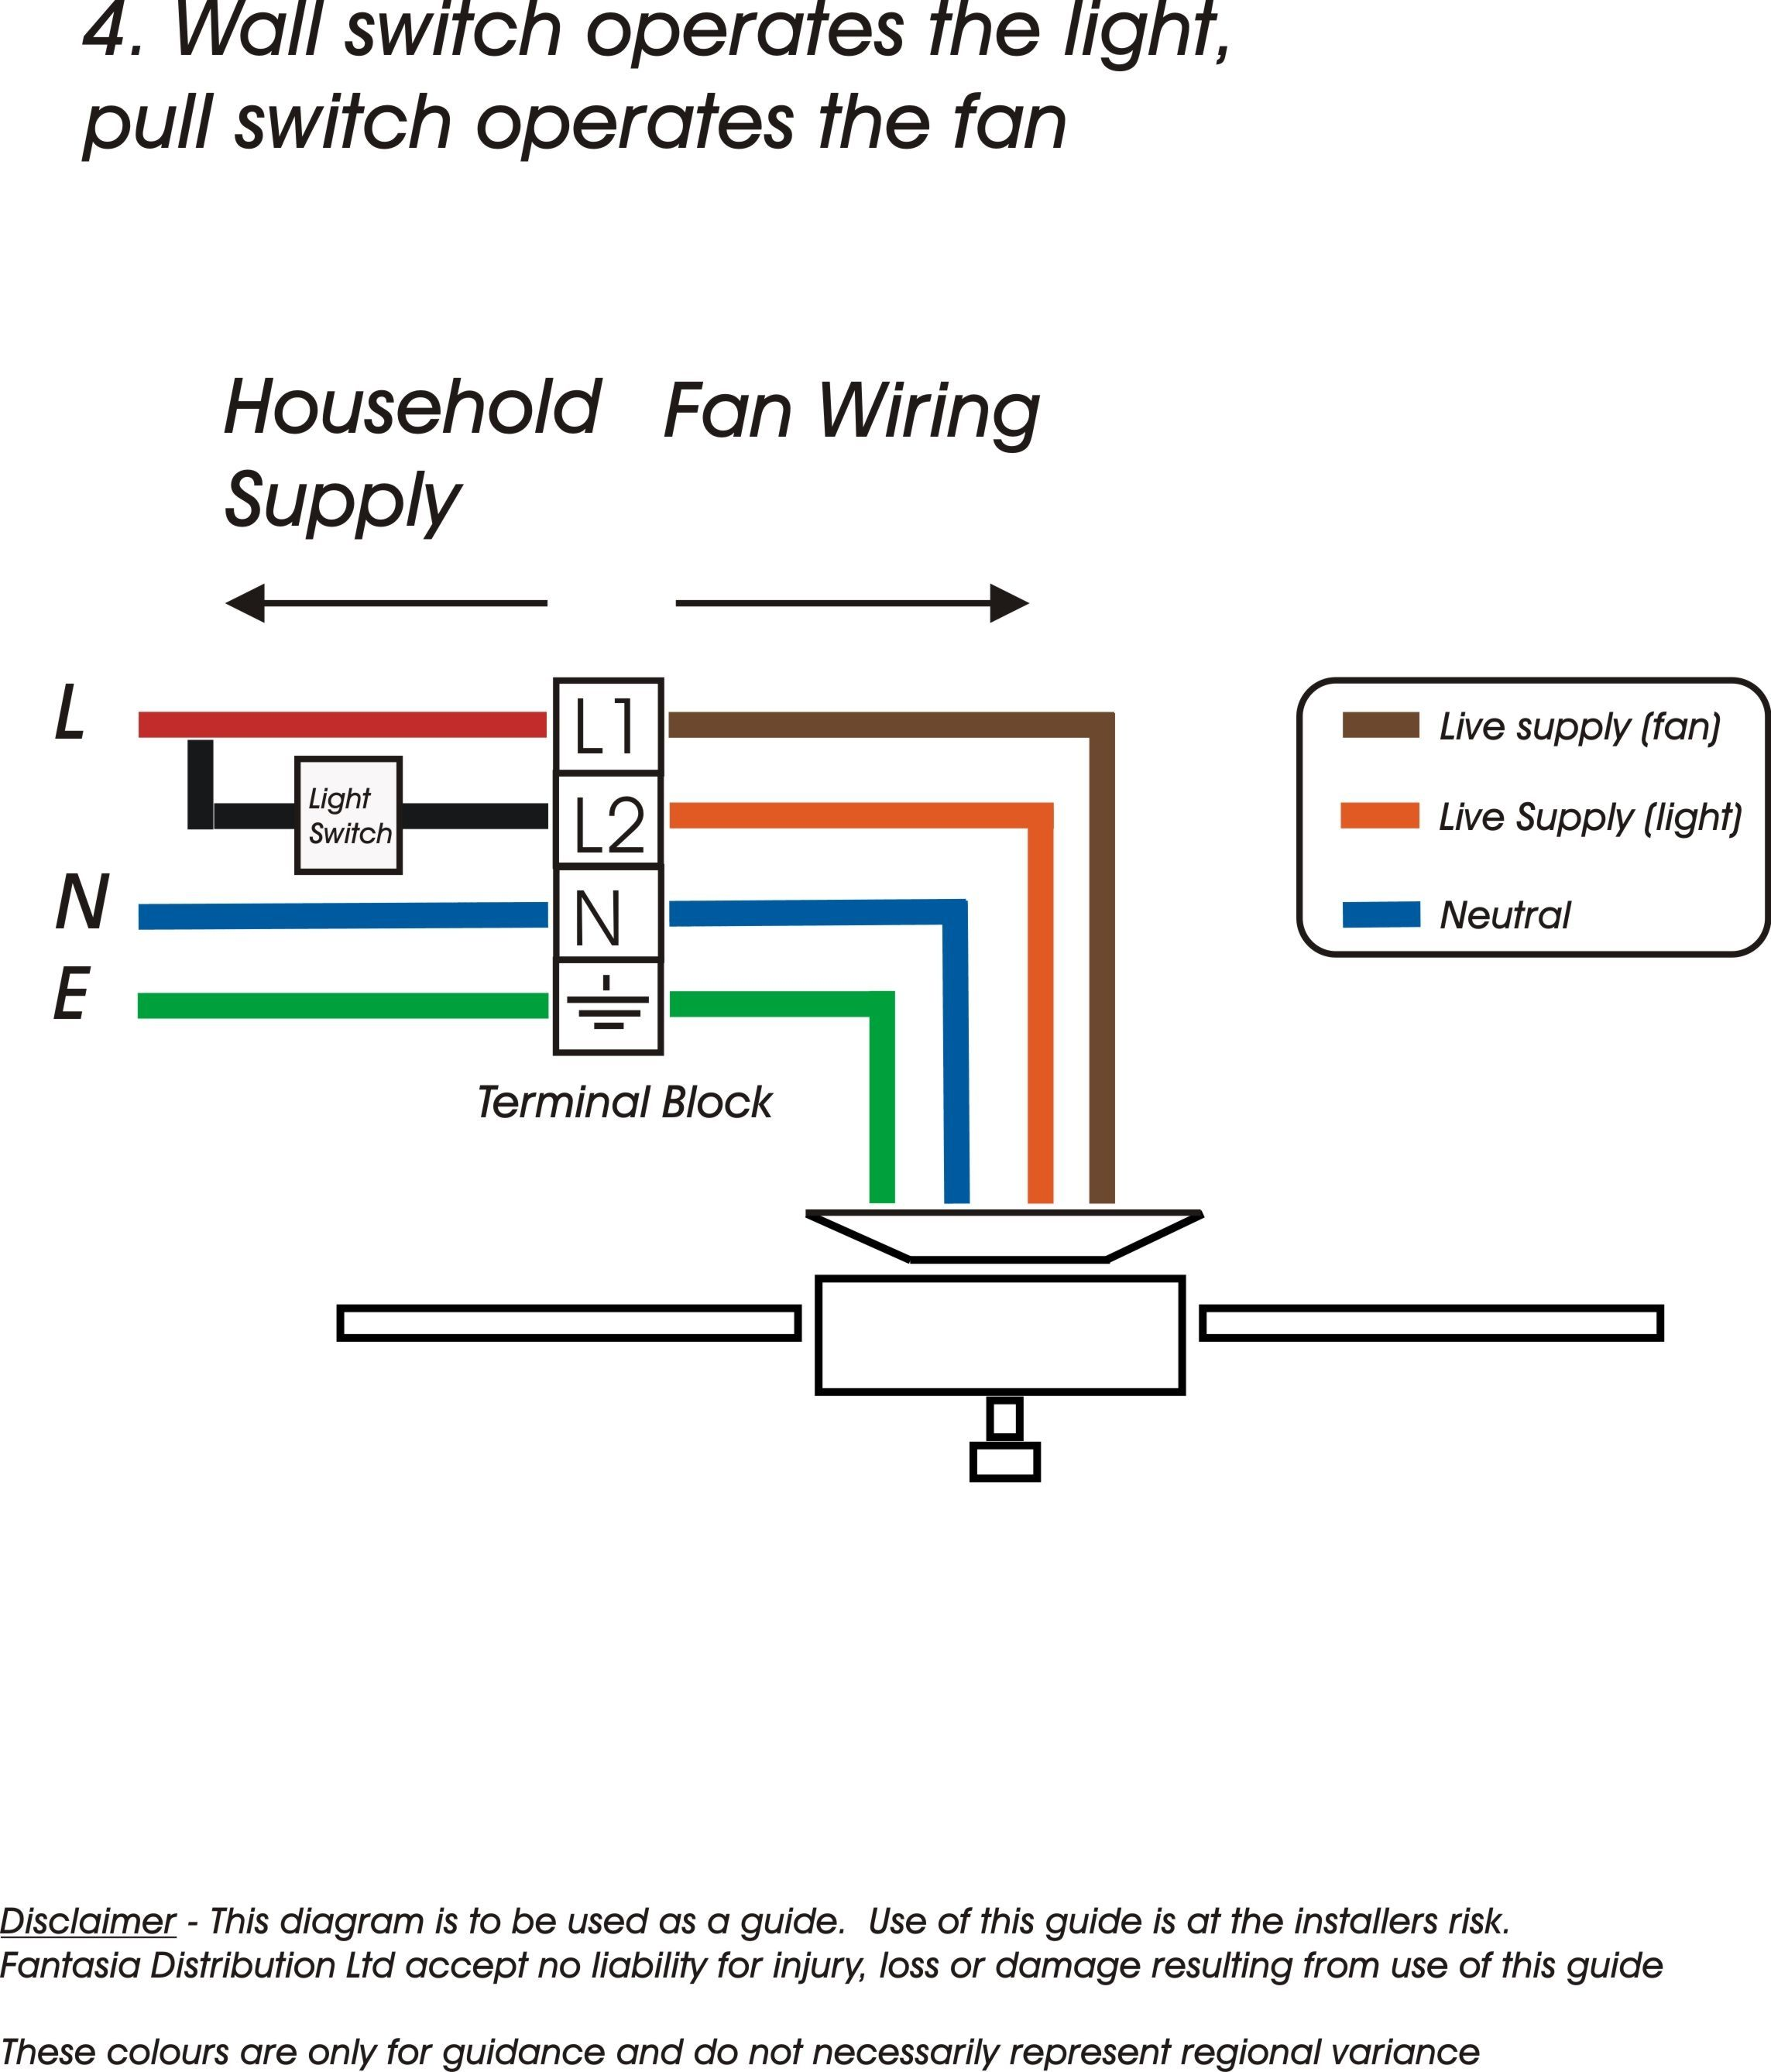 3 sd ceiling fan switch wiring diagram in the ceiling fan electrical wiring colors  with images  ceiling fan  ceiling fan electrical wiring colors